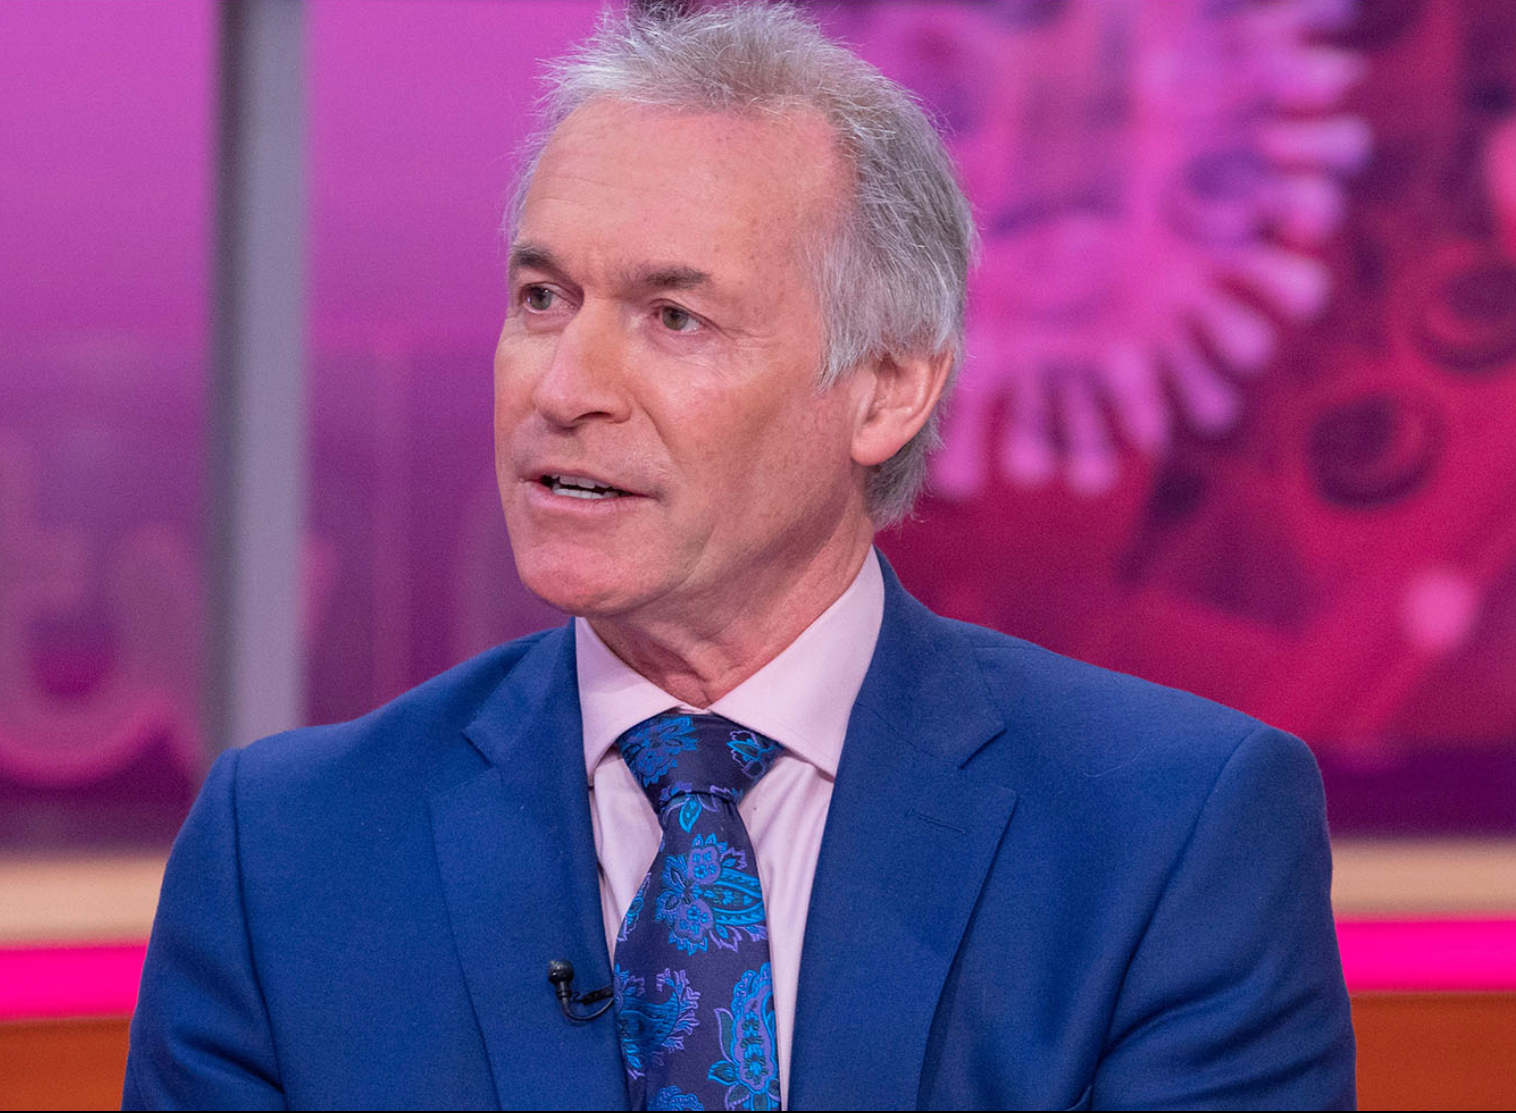 Do I have coronavirus? Dr Hilary Jones advises what to do if you're showing COVID-19 symptoms